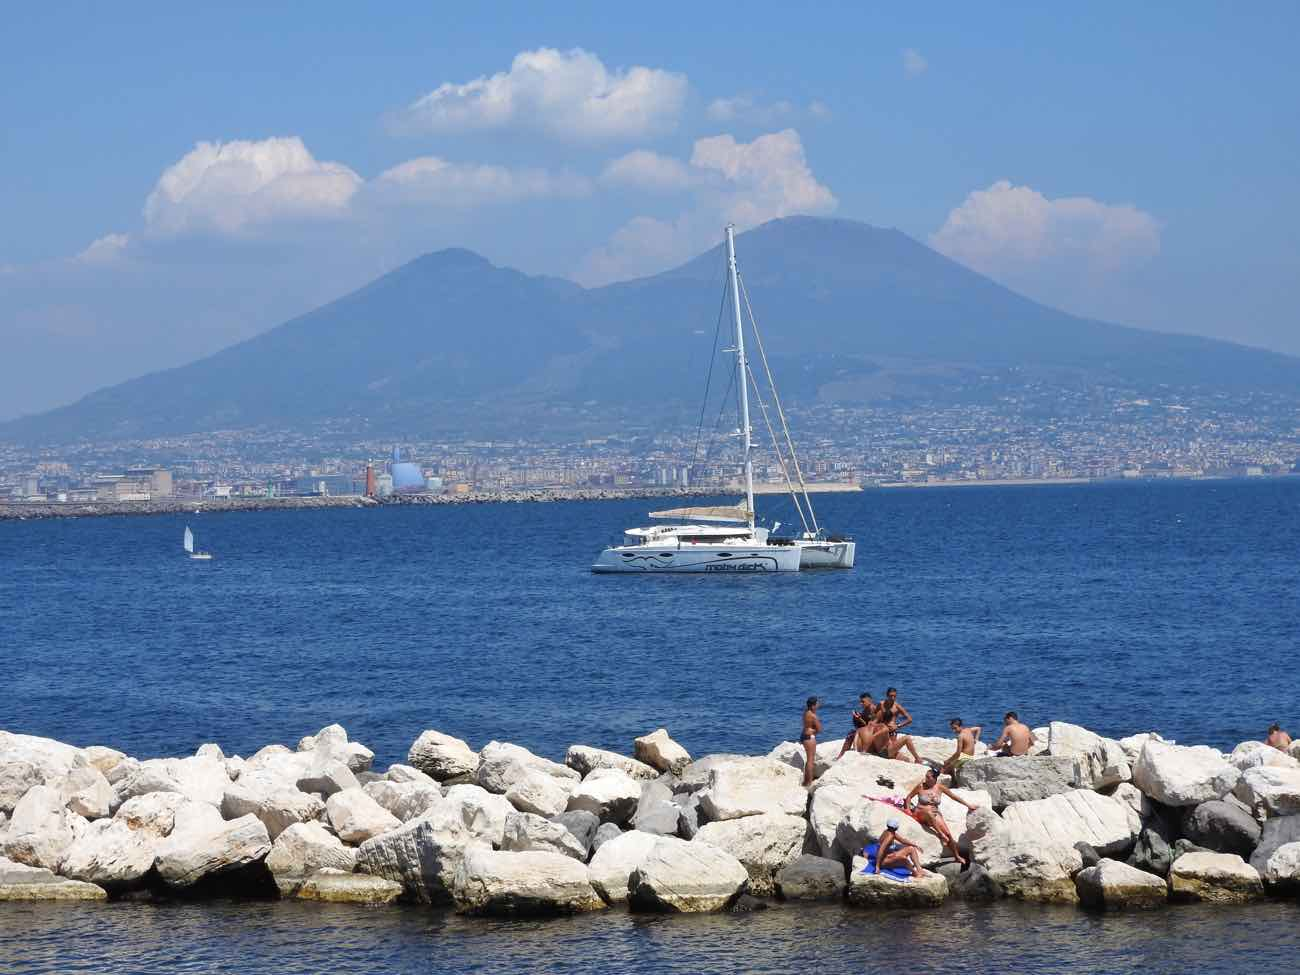 is naples safe for tourists in 2017 - seaside promenade